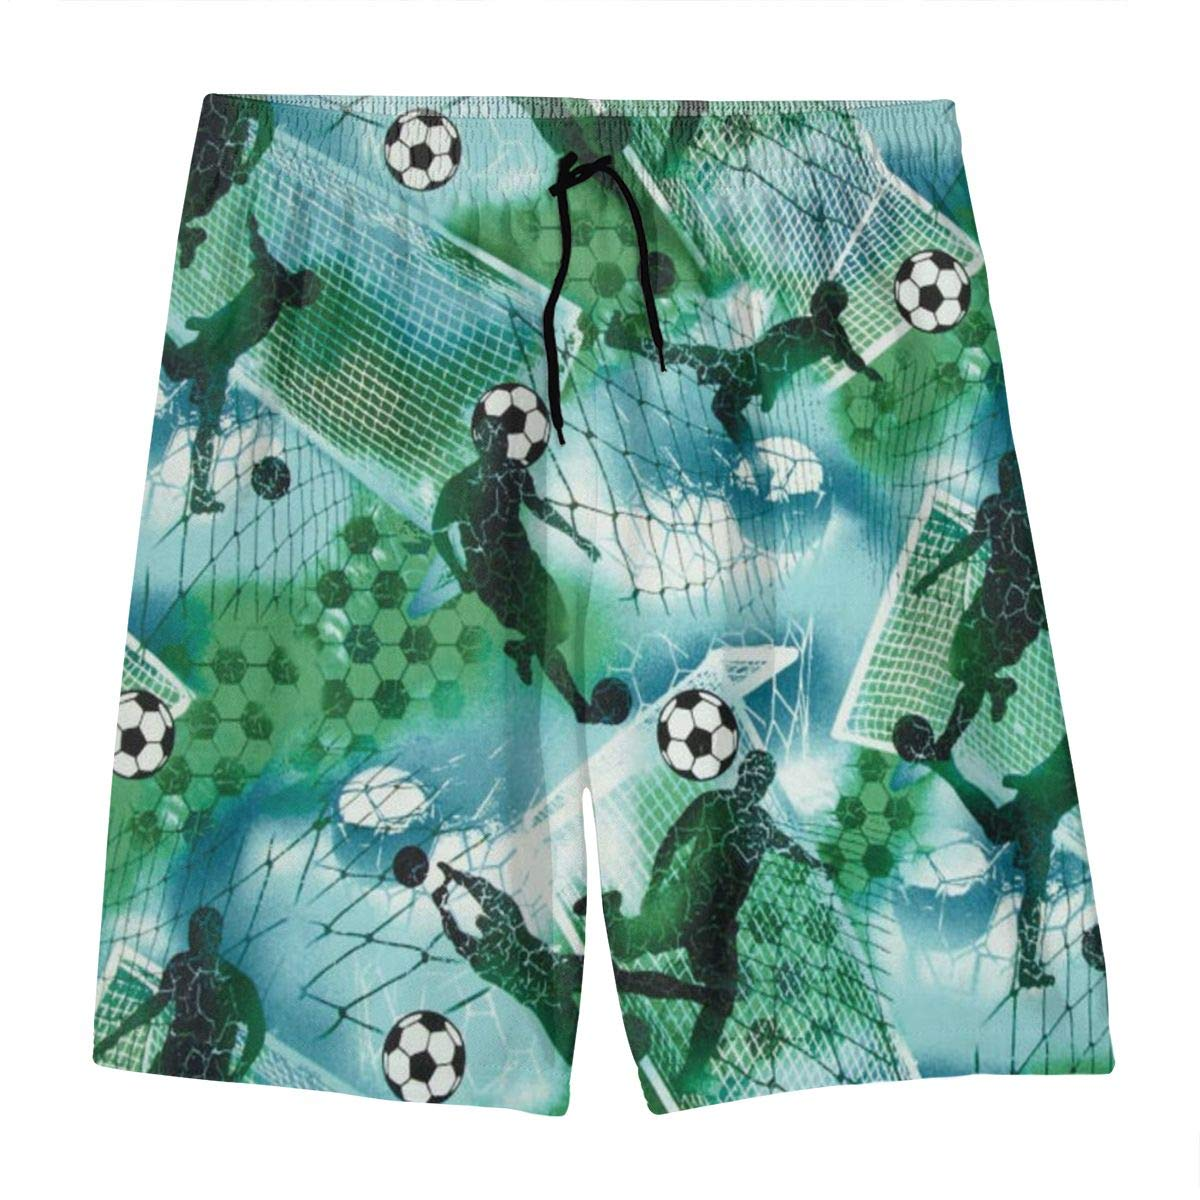 Hkany Sports Soccer Boy Soccer Blue Green Teenager Boys Beachwear Beach Shorts Pants Board Shorts